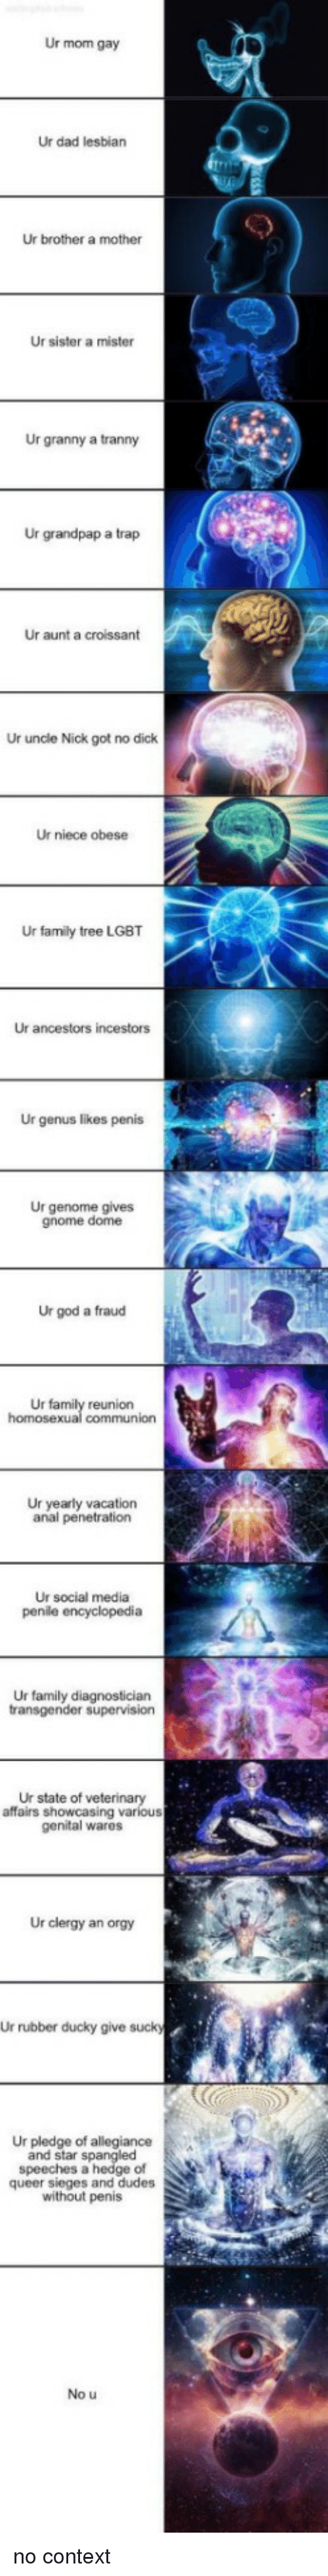 Pledge of Allegiance: Ur mom gay  Ur dad lesbian  Ur brother a mother  Ur sister a mister  Ur granny a tranny  Ur grandpap a trap  Ur aunt a croissant  Ur uncle Nick got no dick  Ur niece obese  Ur family tree LGBT  Ur ancestors incestors  Ur genus likes penis  Ur genome gives  gnome dome  Ur god a fraud  Ur  reunion  Ur yearly vacation  anal penetration  Ur social media  Ur family diagnostician  Ur state of veterinary  affairs showcasing various  genital wares  Ur clergy an orgy  Ur rubber ducky give suck  Ur pledge of allegiance  and star spangled  speeches a hedge of  queer sieges and dudes  without penis  No u no context